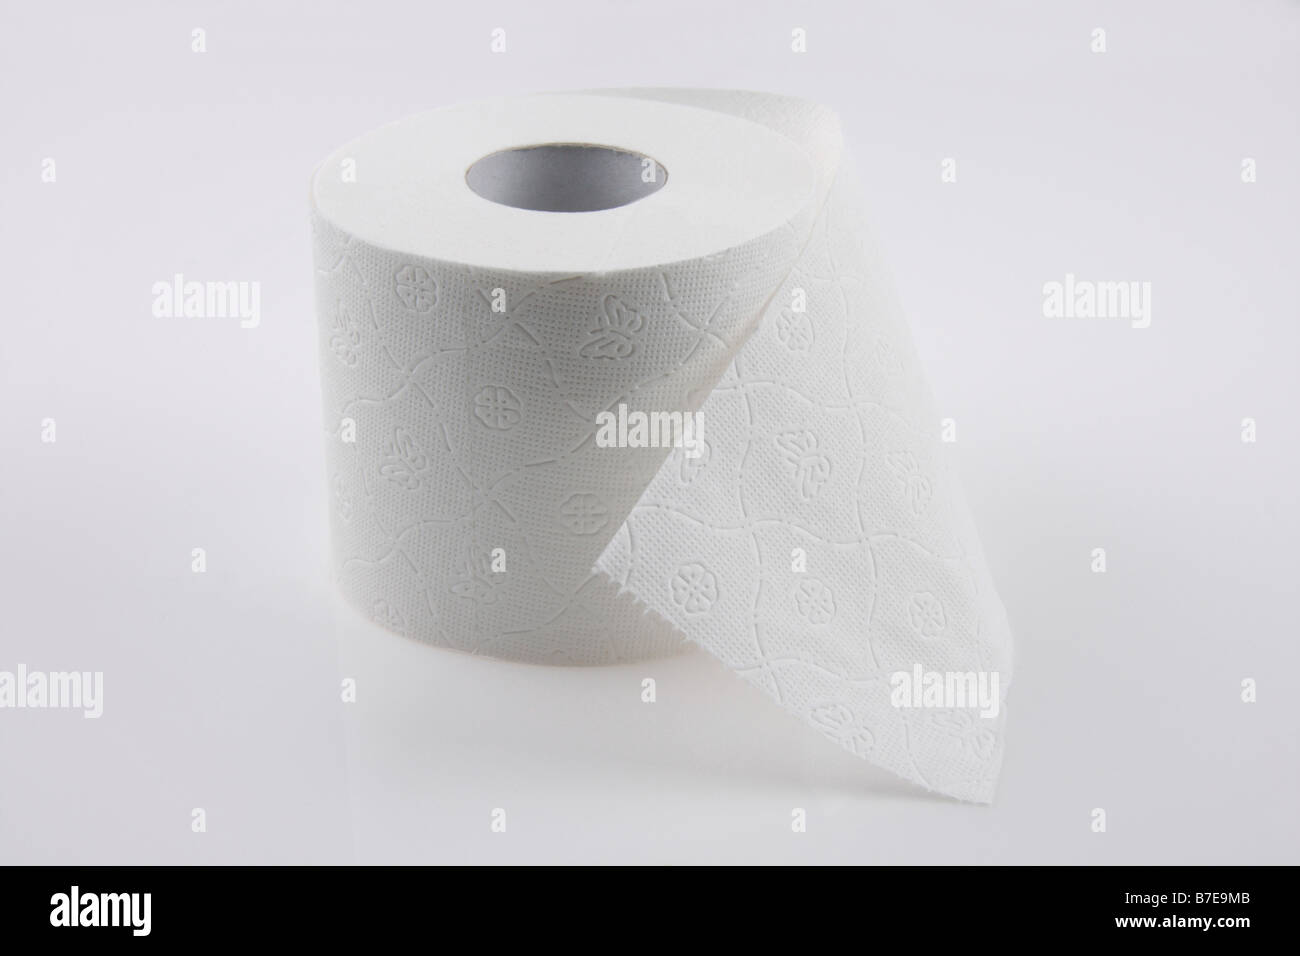 clip image roll of toilet paper editorial use only Stock Photo